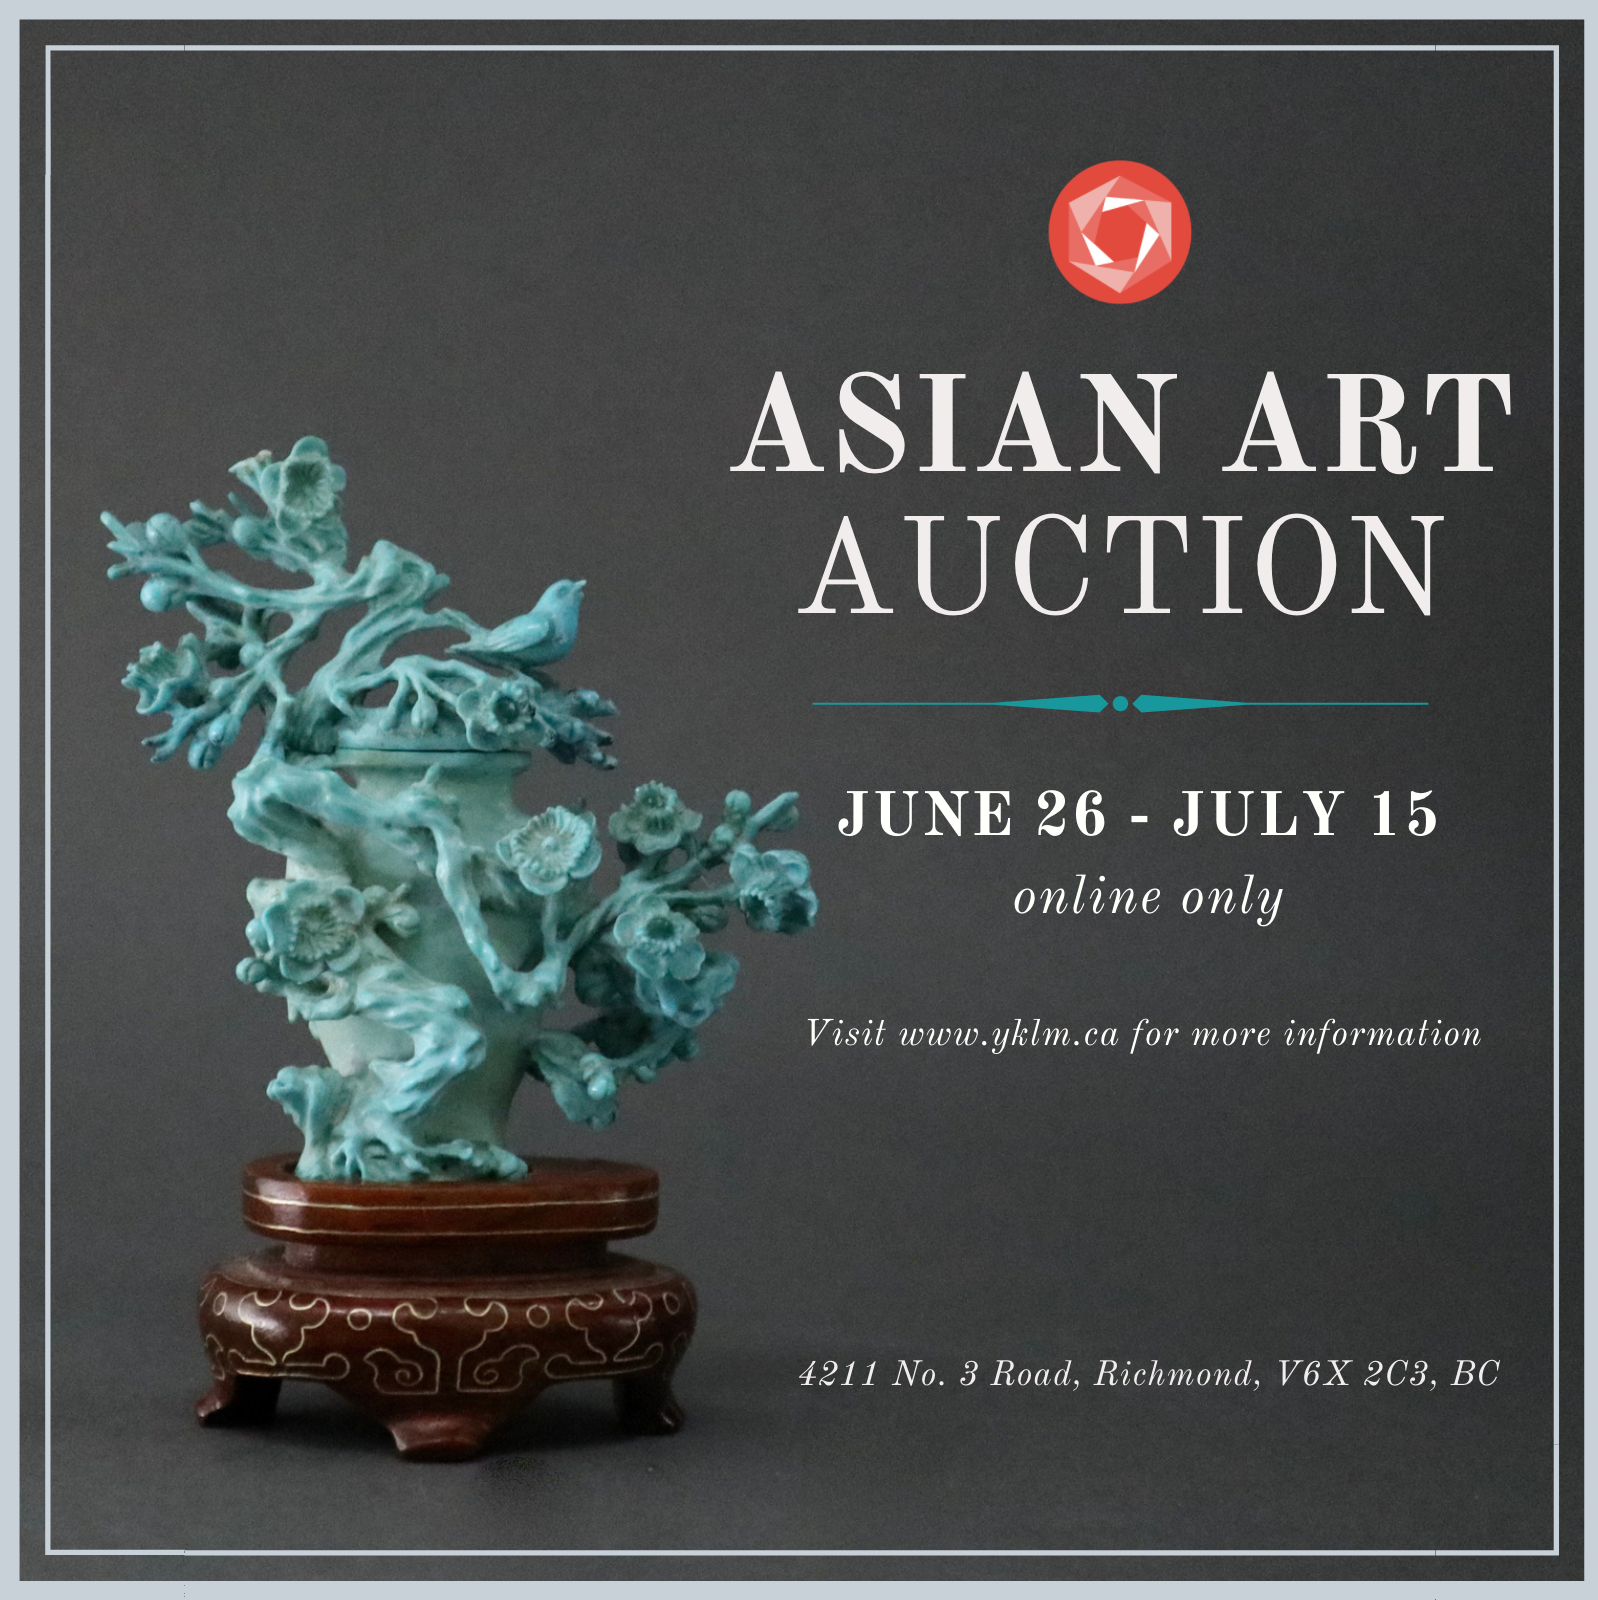 Asian Art Auction